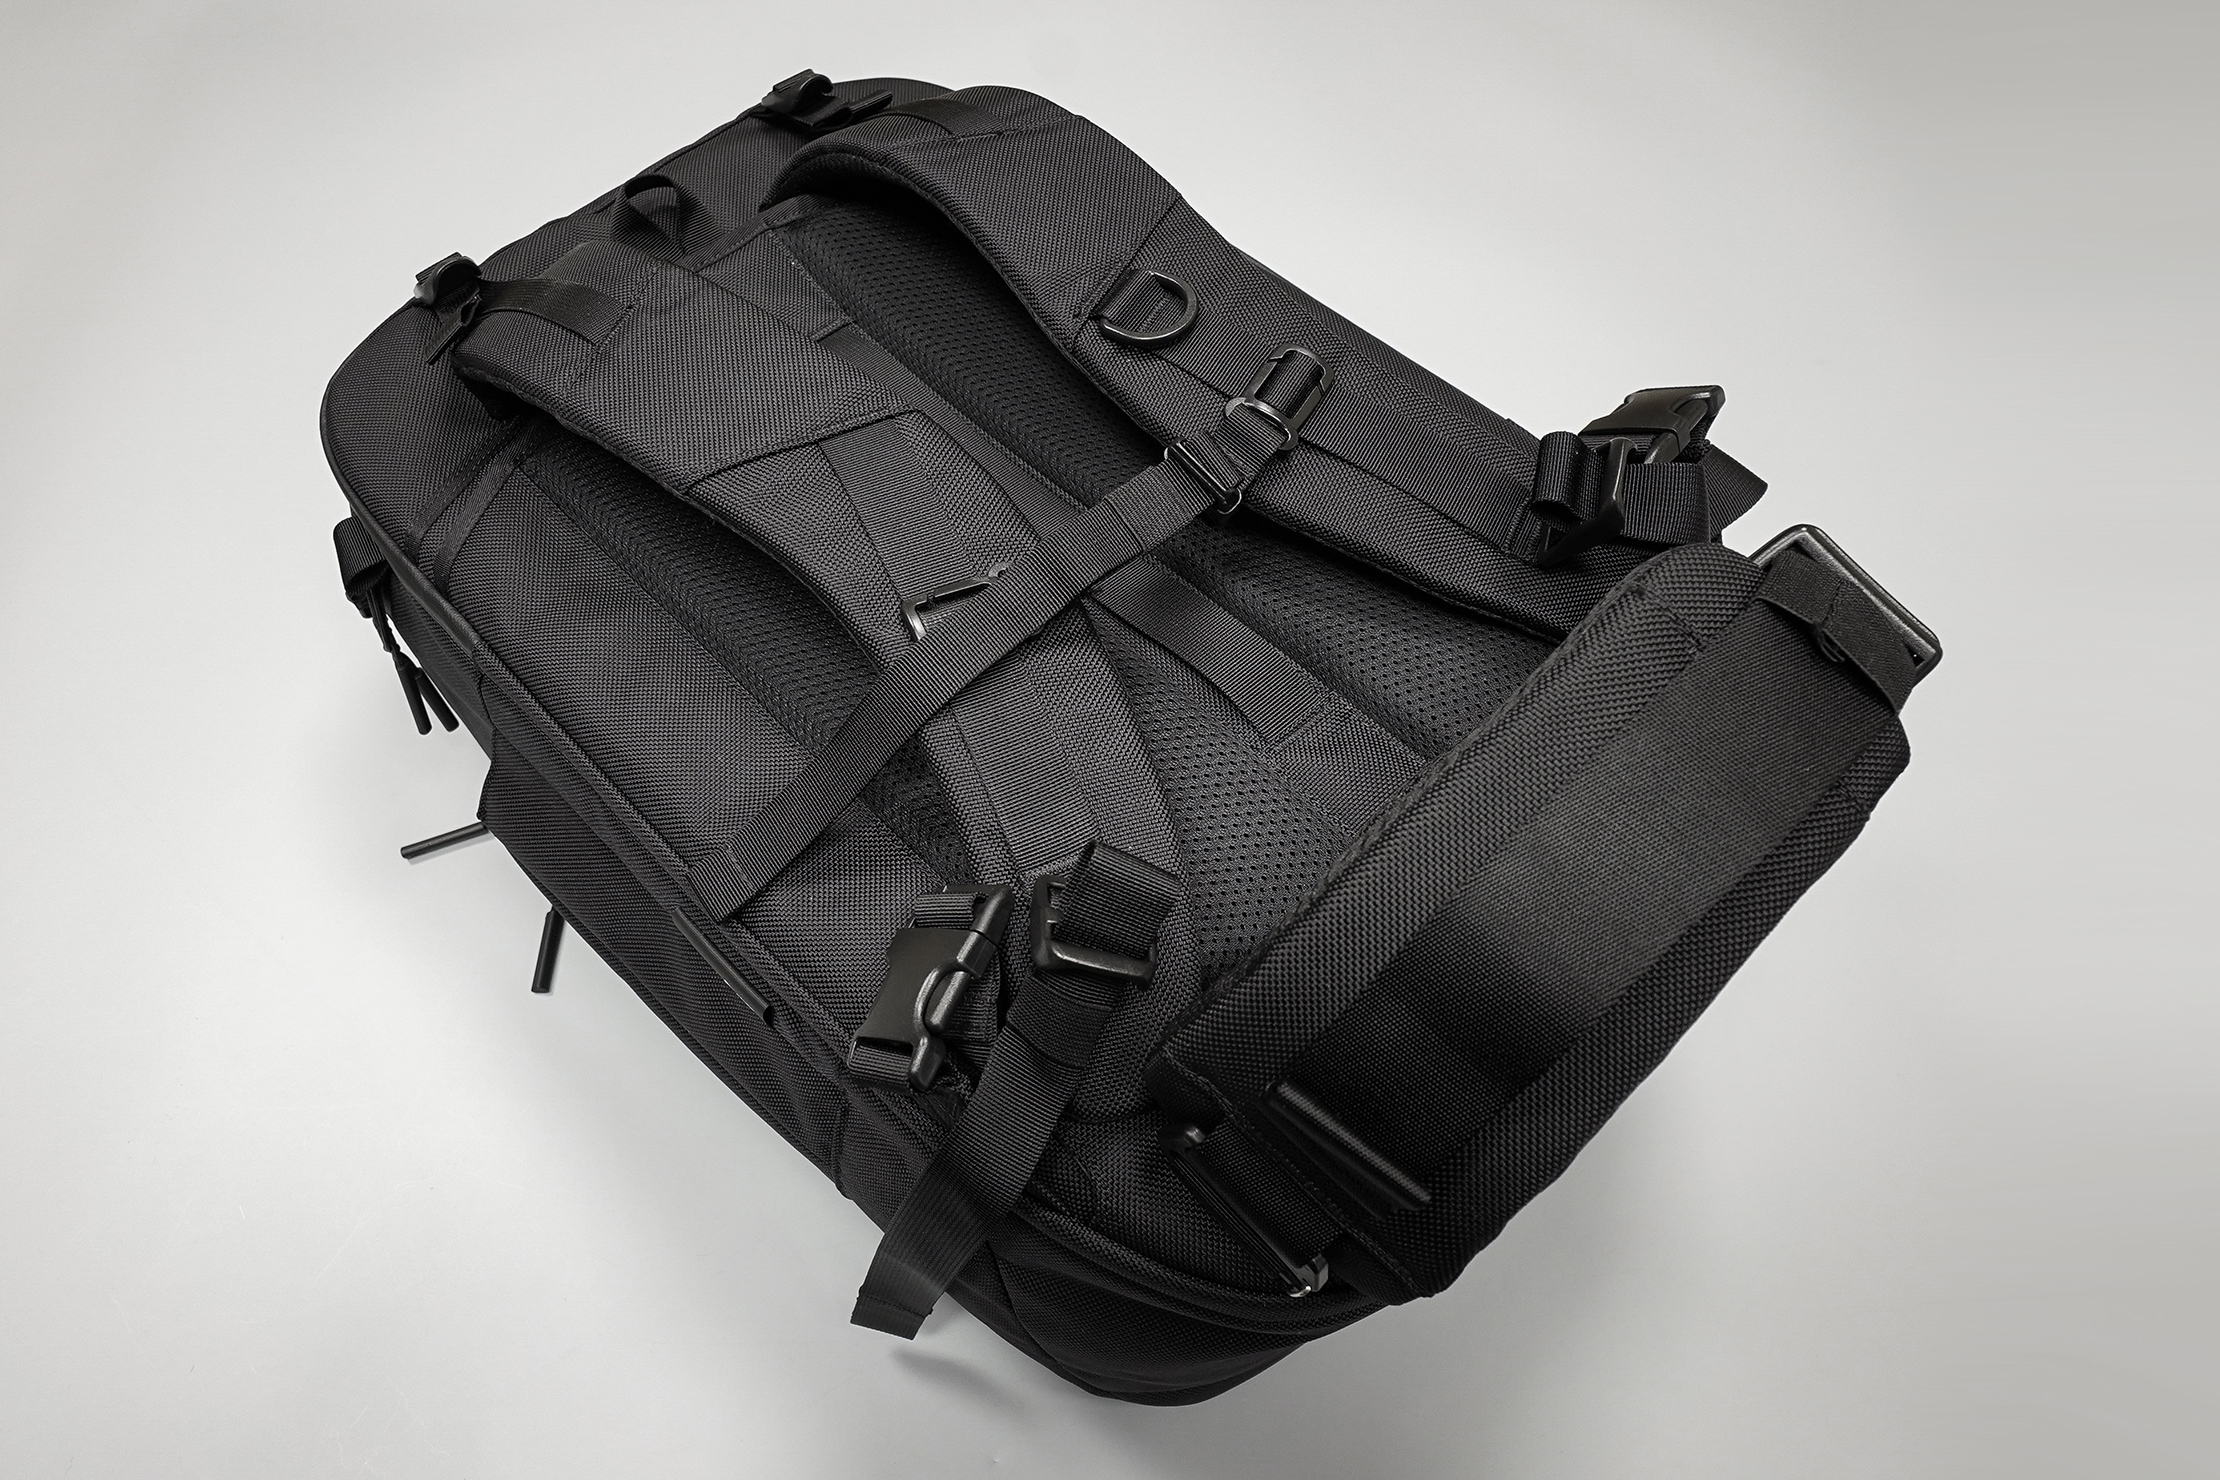 Aer Capsule Pack Max Back Panel and Harness System